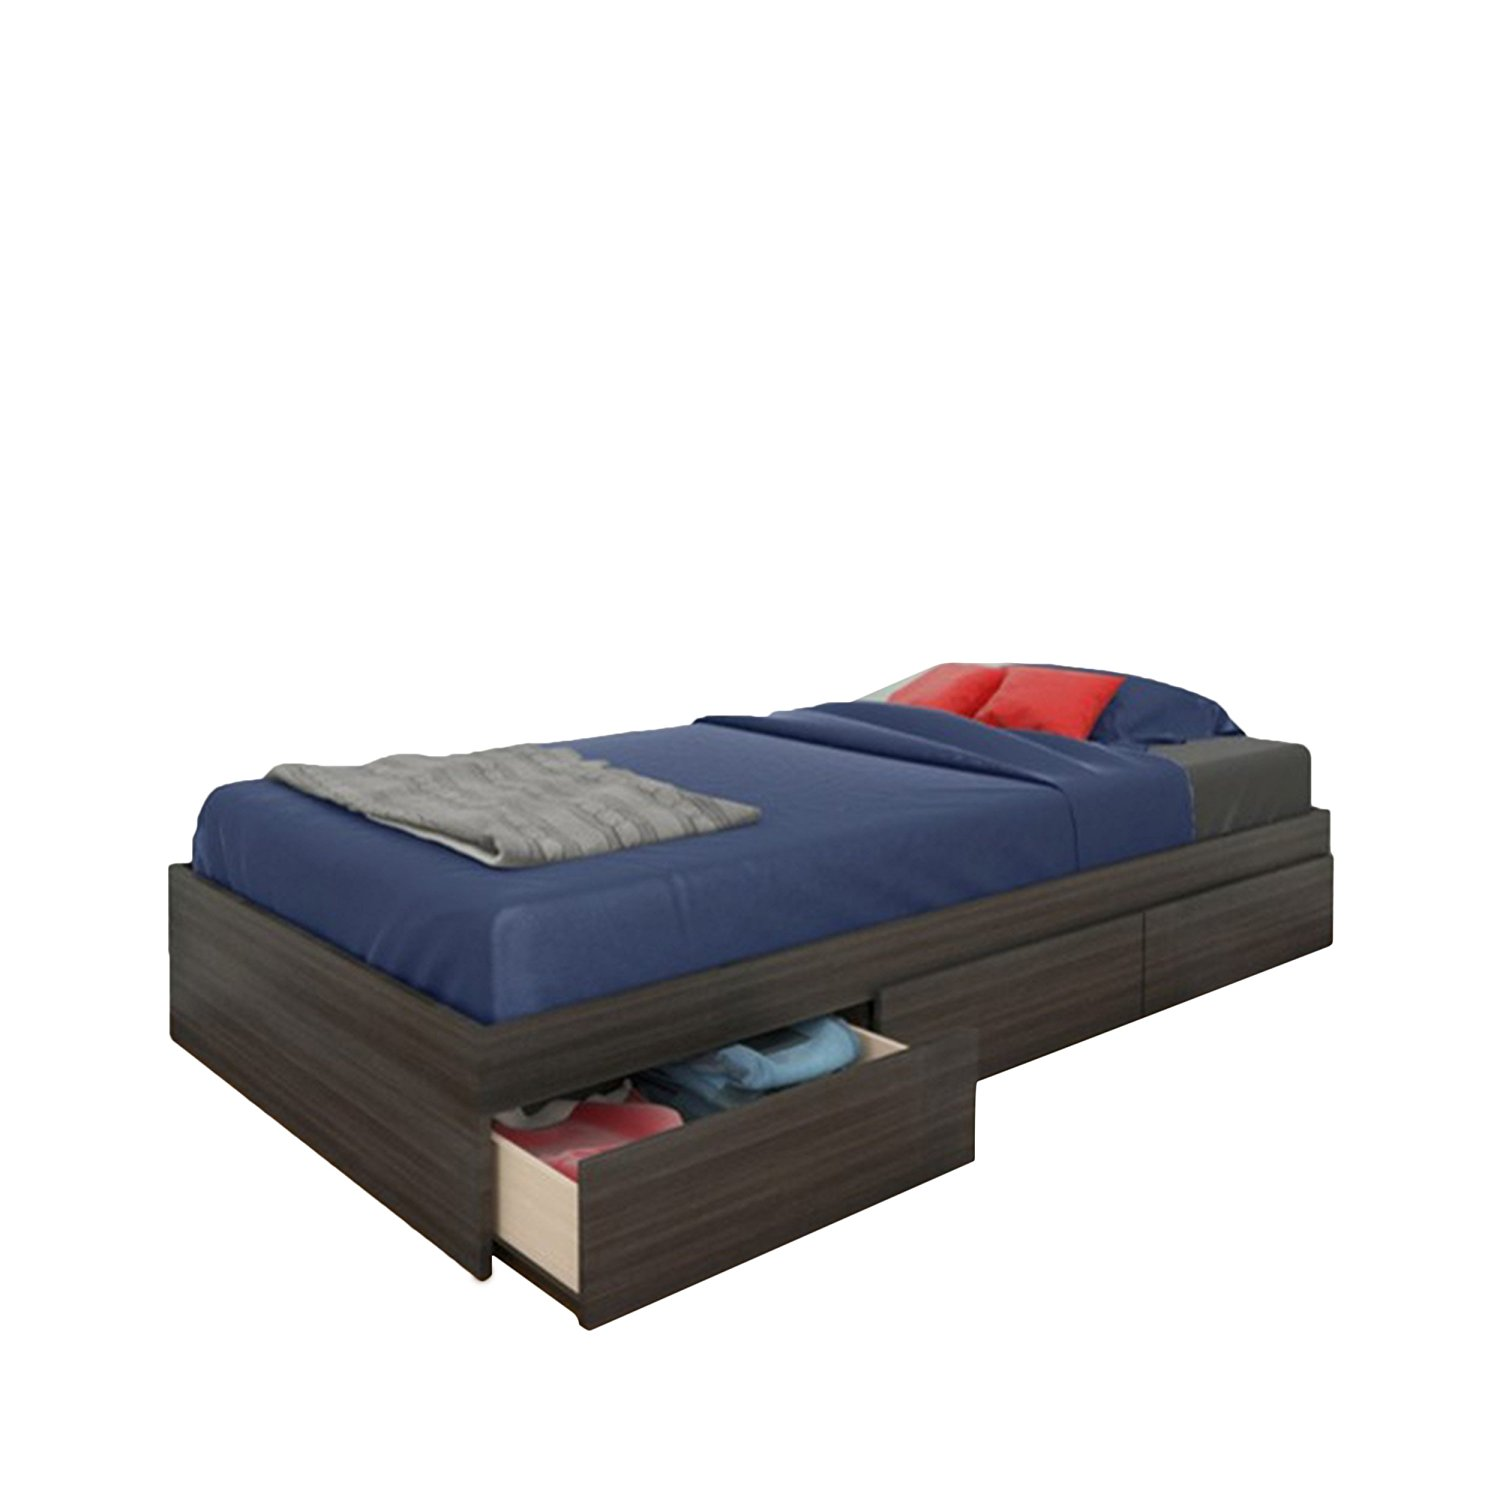 Cheap Twin Size Boat Bed, find Twin Size Boat Bed deals on line at ...